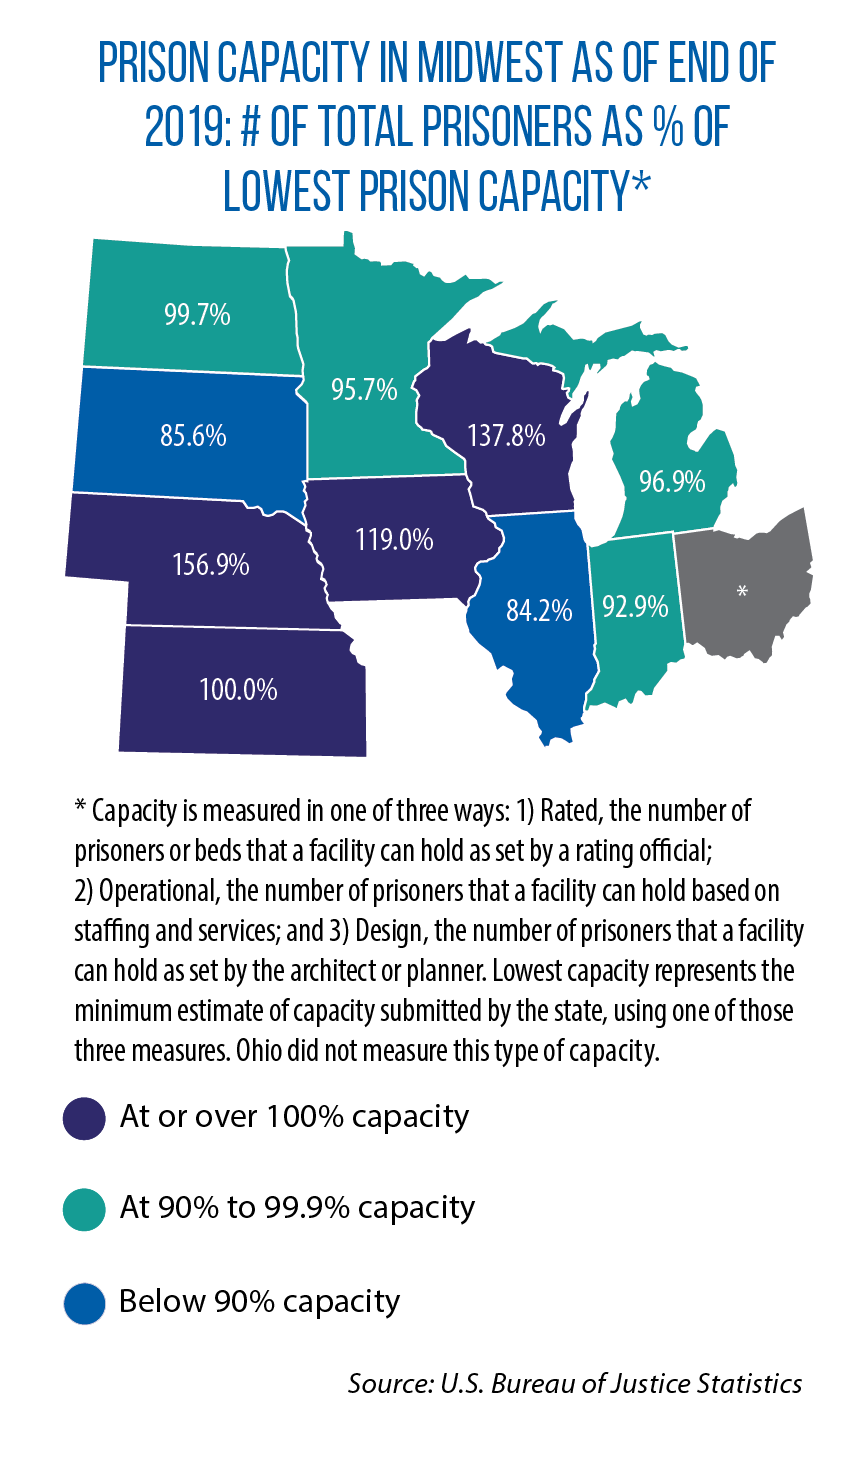 Map showing prison capacity in Midwest as of end of 2019: # of total prisoners as a % of lowest prison capacity